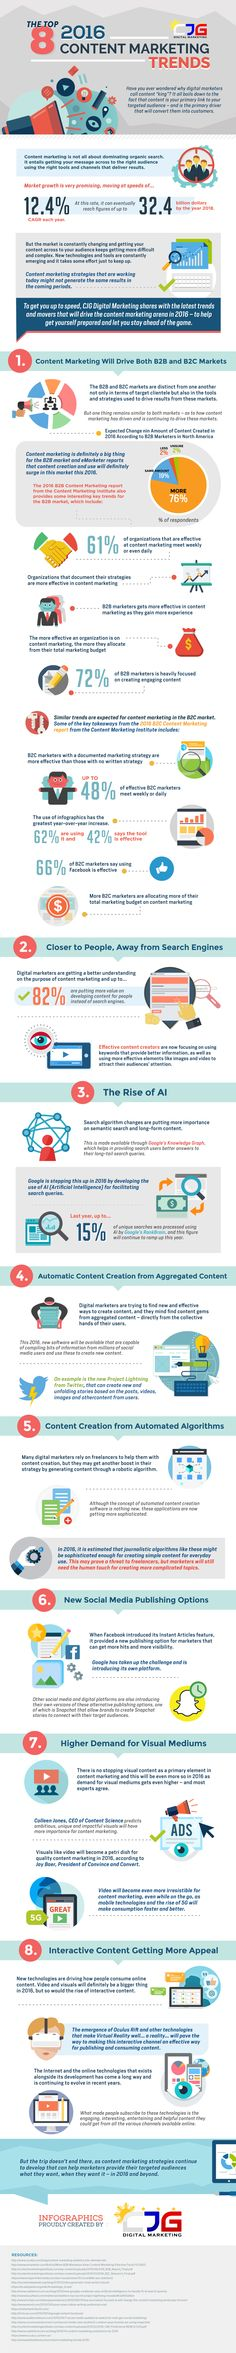 The 8 Hottest Content Marketing Trends For 2016 [Infographic